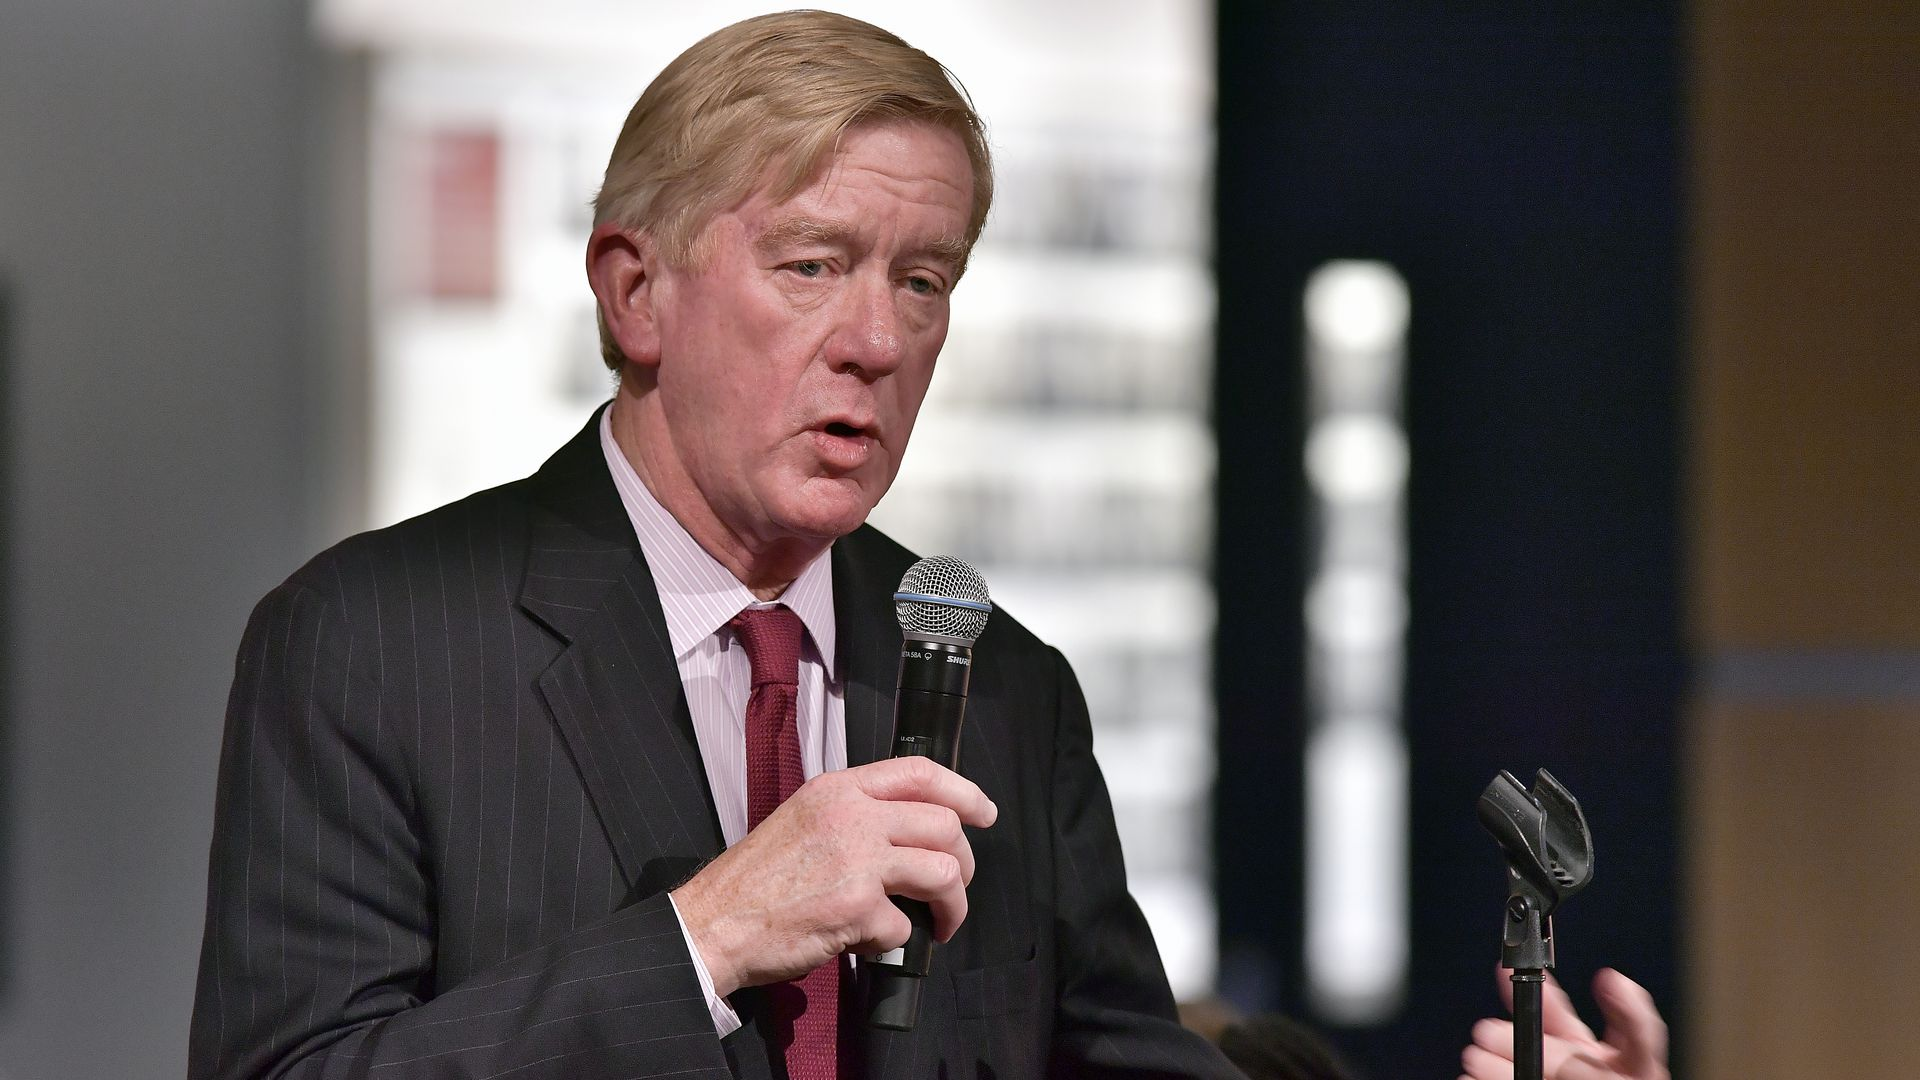 Bill Weld: Everything you need to know about the 2020 candidate